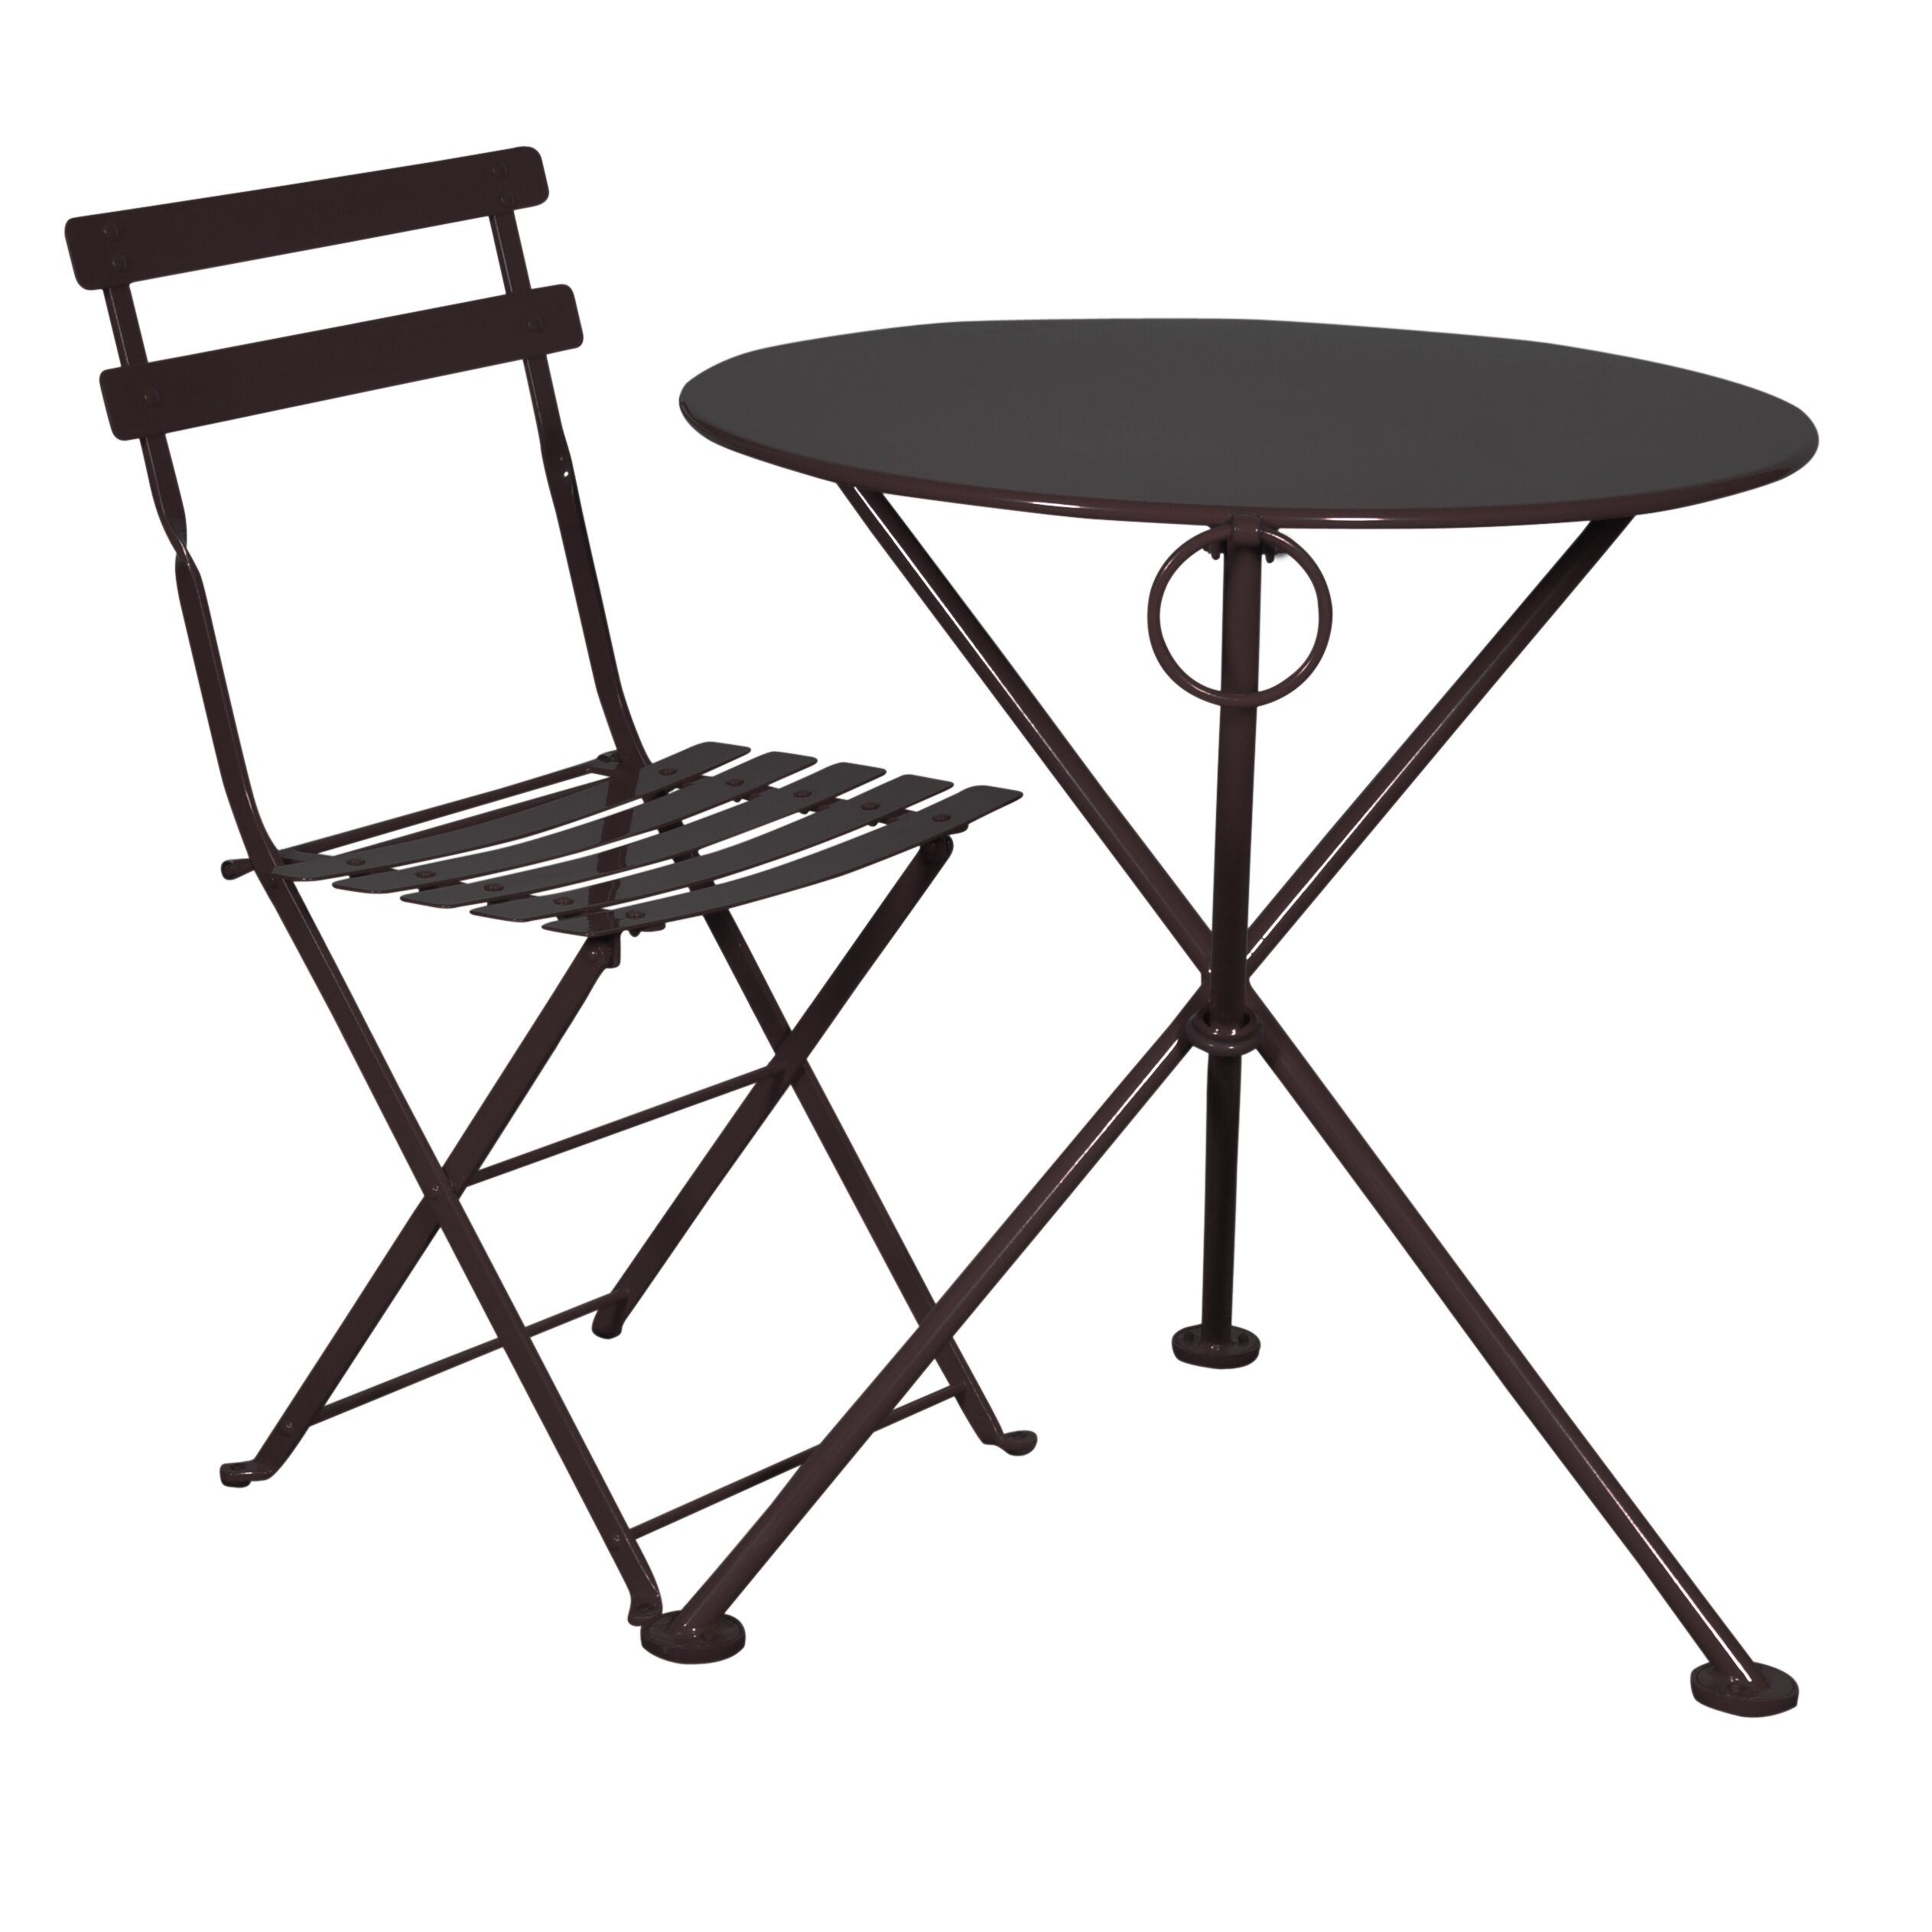 Furniture designhouse french bistro european caf folding for Metal patio table chairs